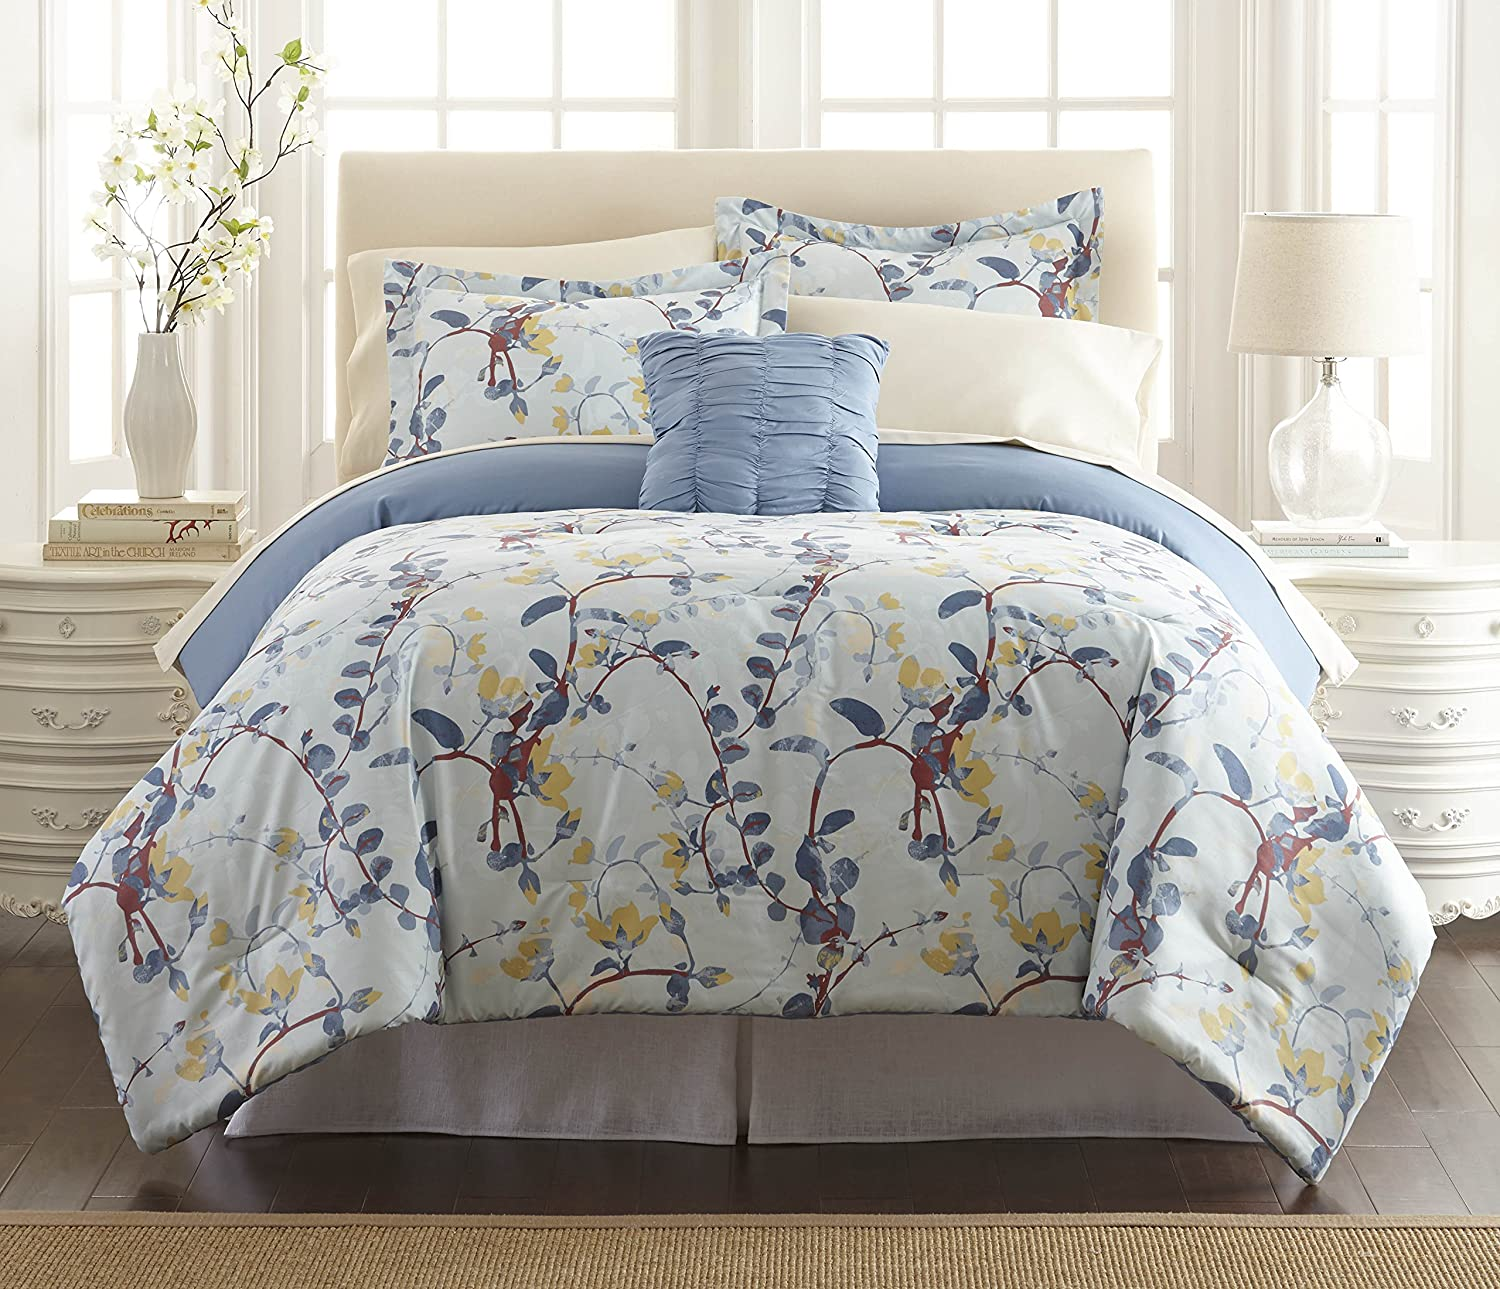 Amrapur Overseas 4BNB68RG-LCA-FL 8 Piece Lucia Printed Reversible Bed In A Bag, Full